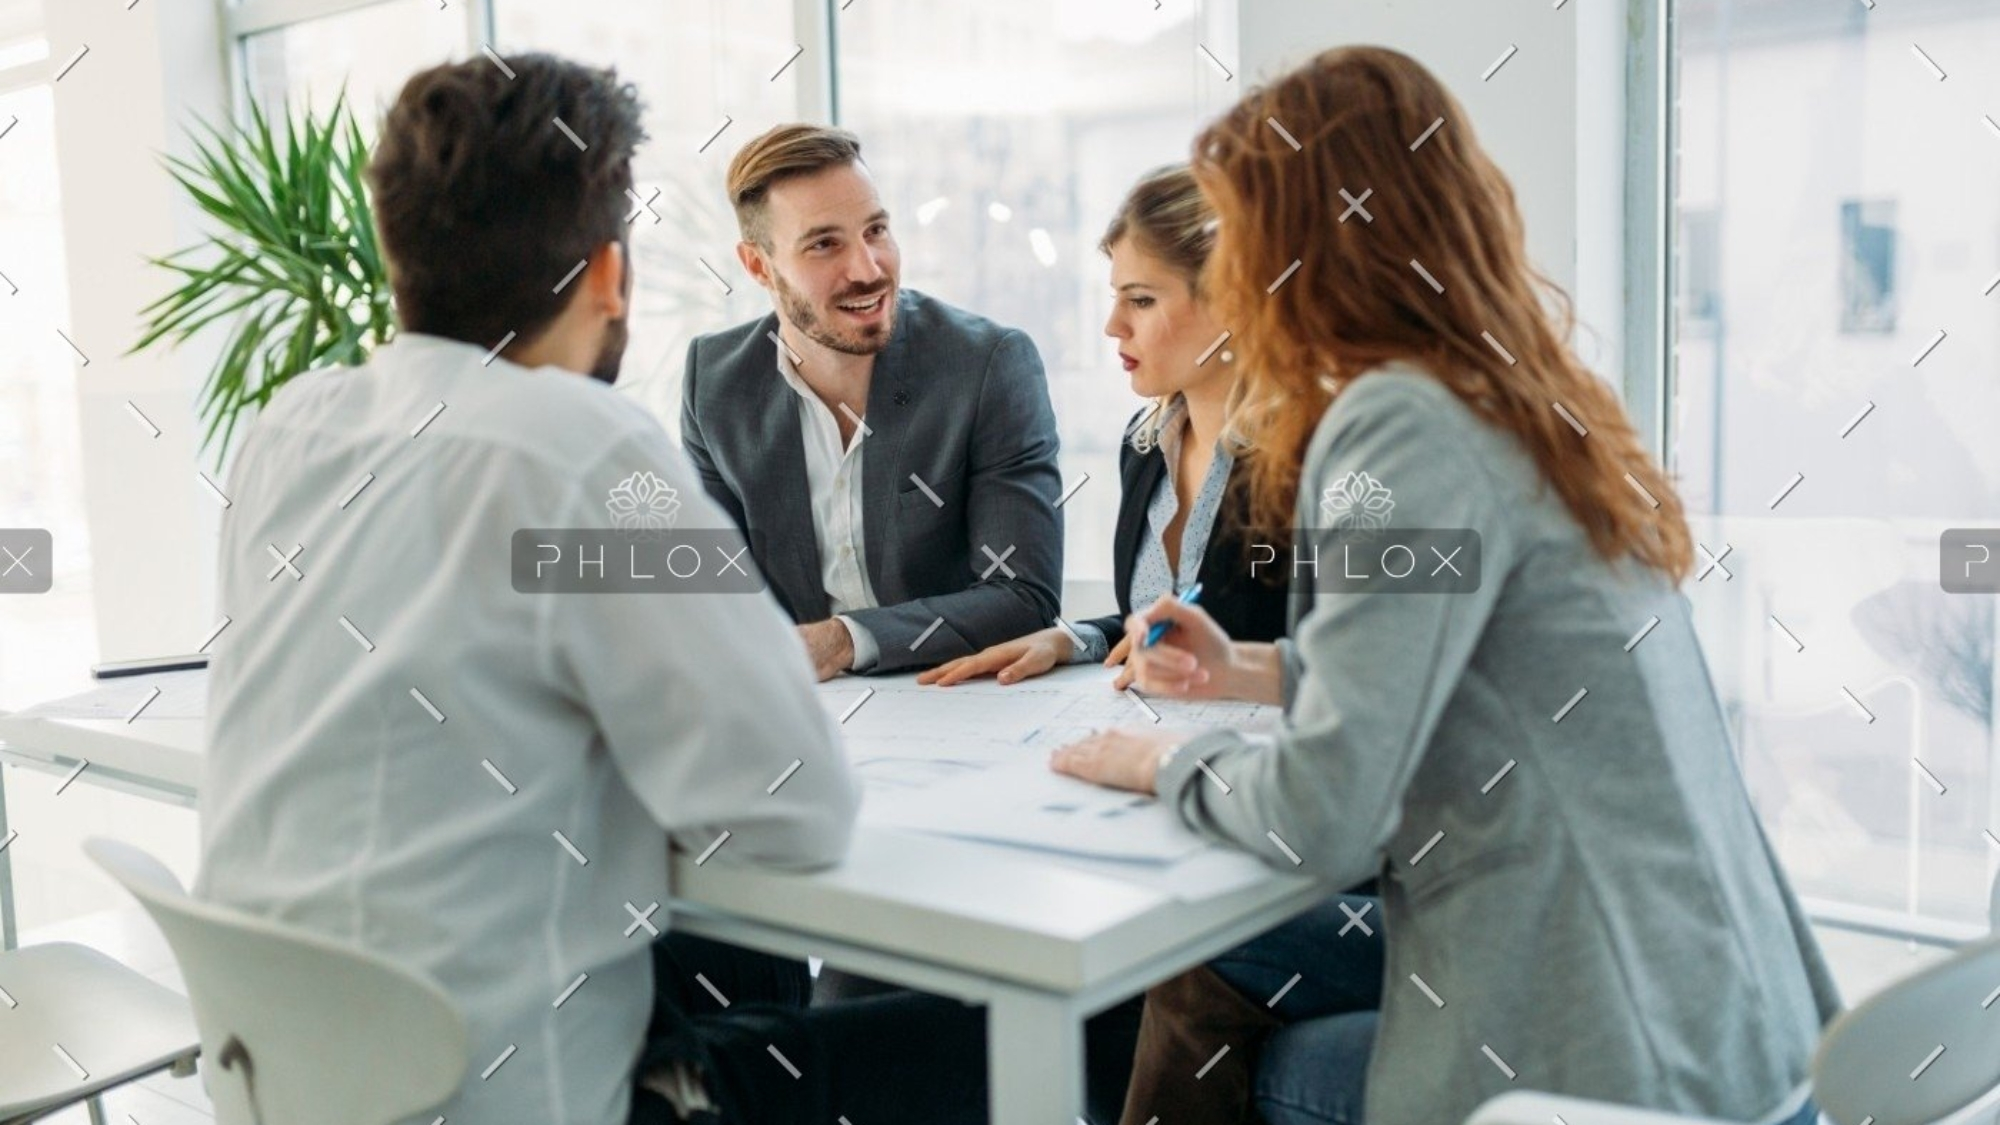 demo-attachment-603-business-people-working-together-on-project-and-5FHSKBL